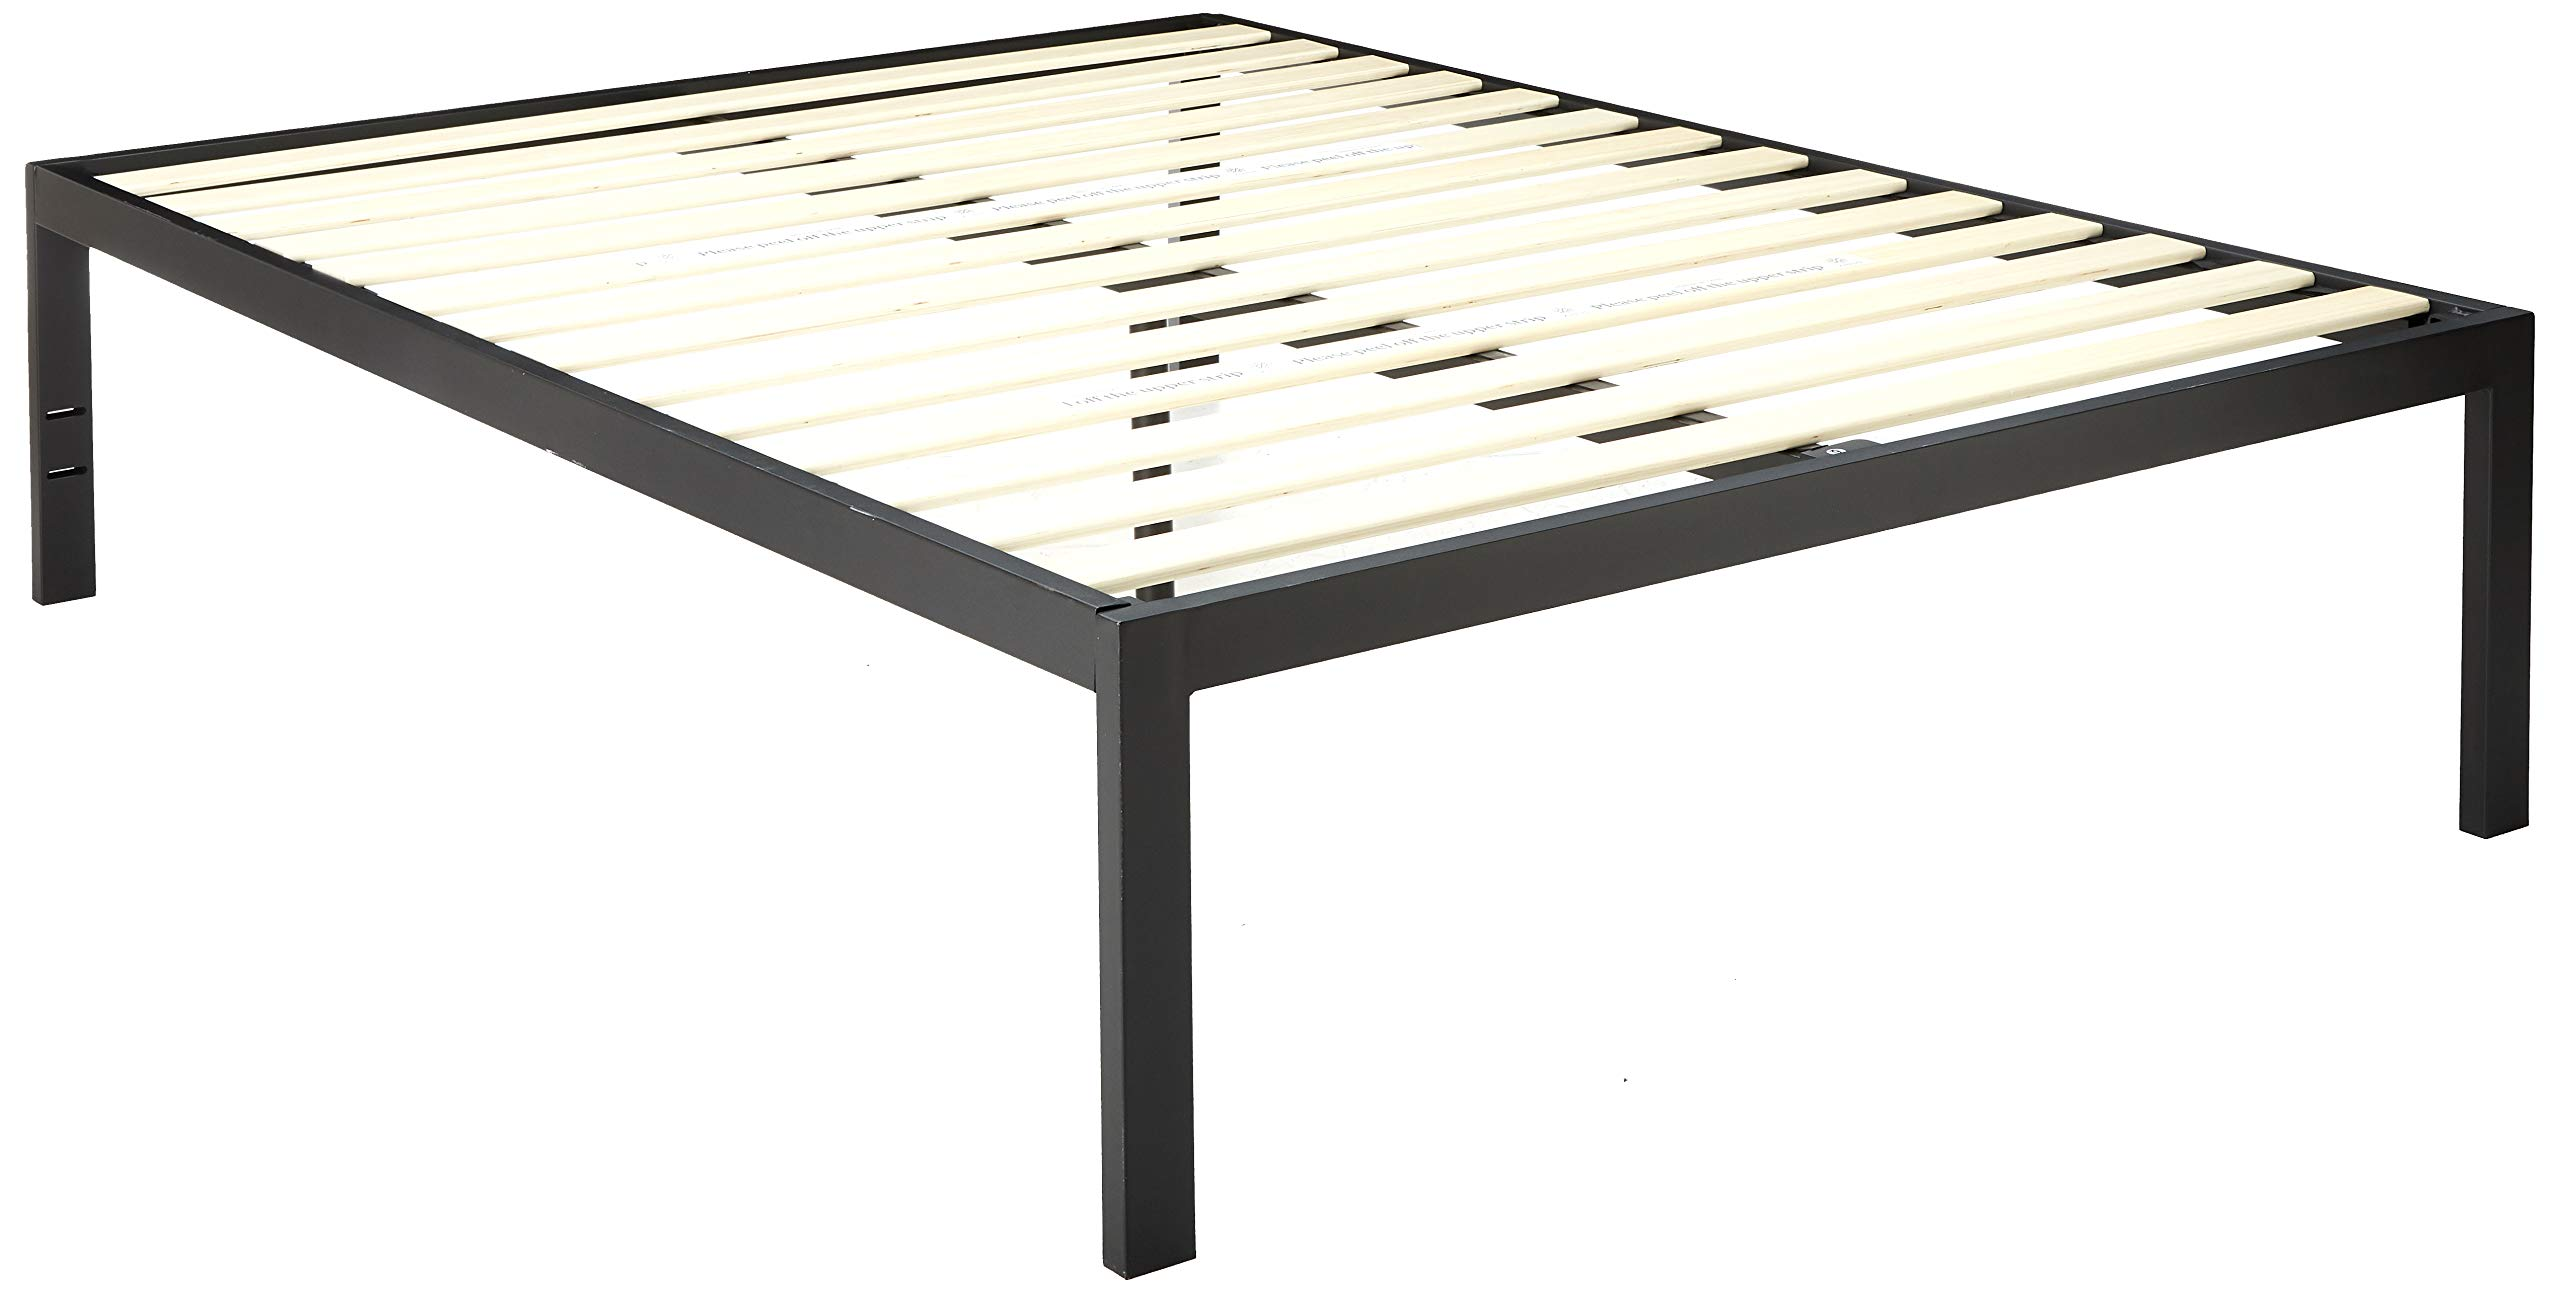 Zinus Lorrick Quick Snap TM 18 Inch Platform Bed Frame / Mattress Foundation / With Less than 3 Inch Spacing / Wooden Slat Support / No Bolts or Nuts / Easy Assembly, Queen